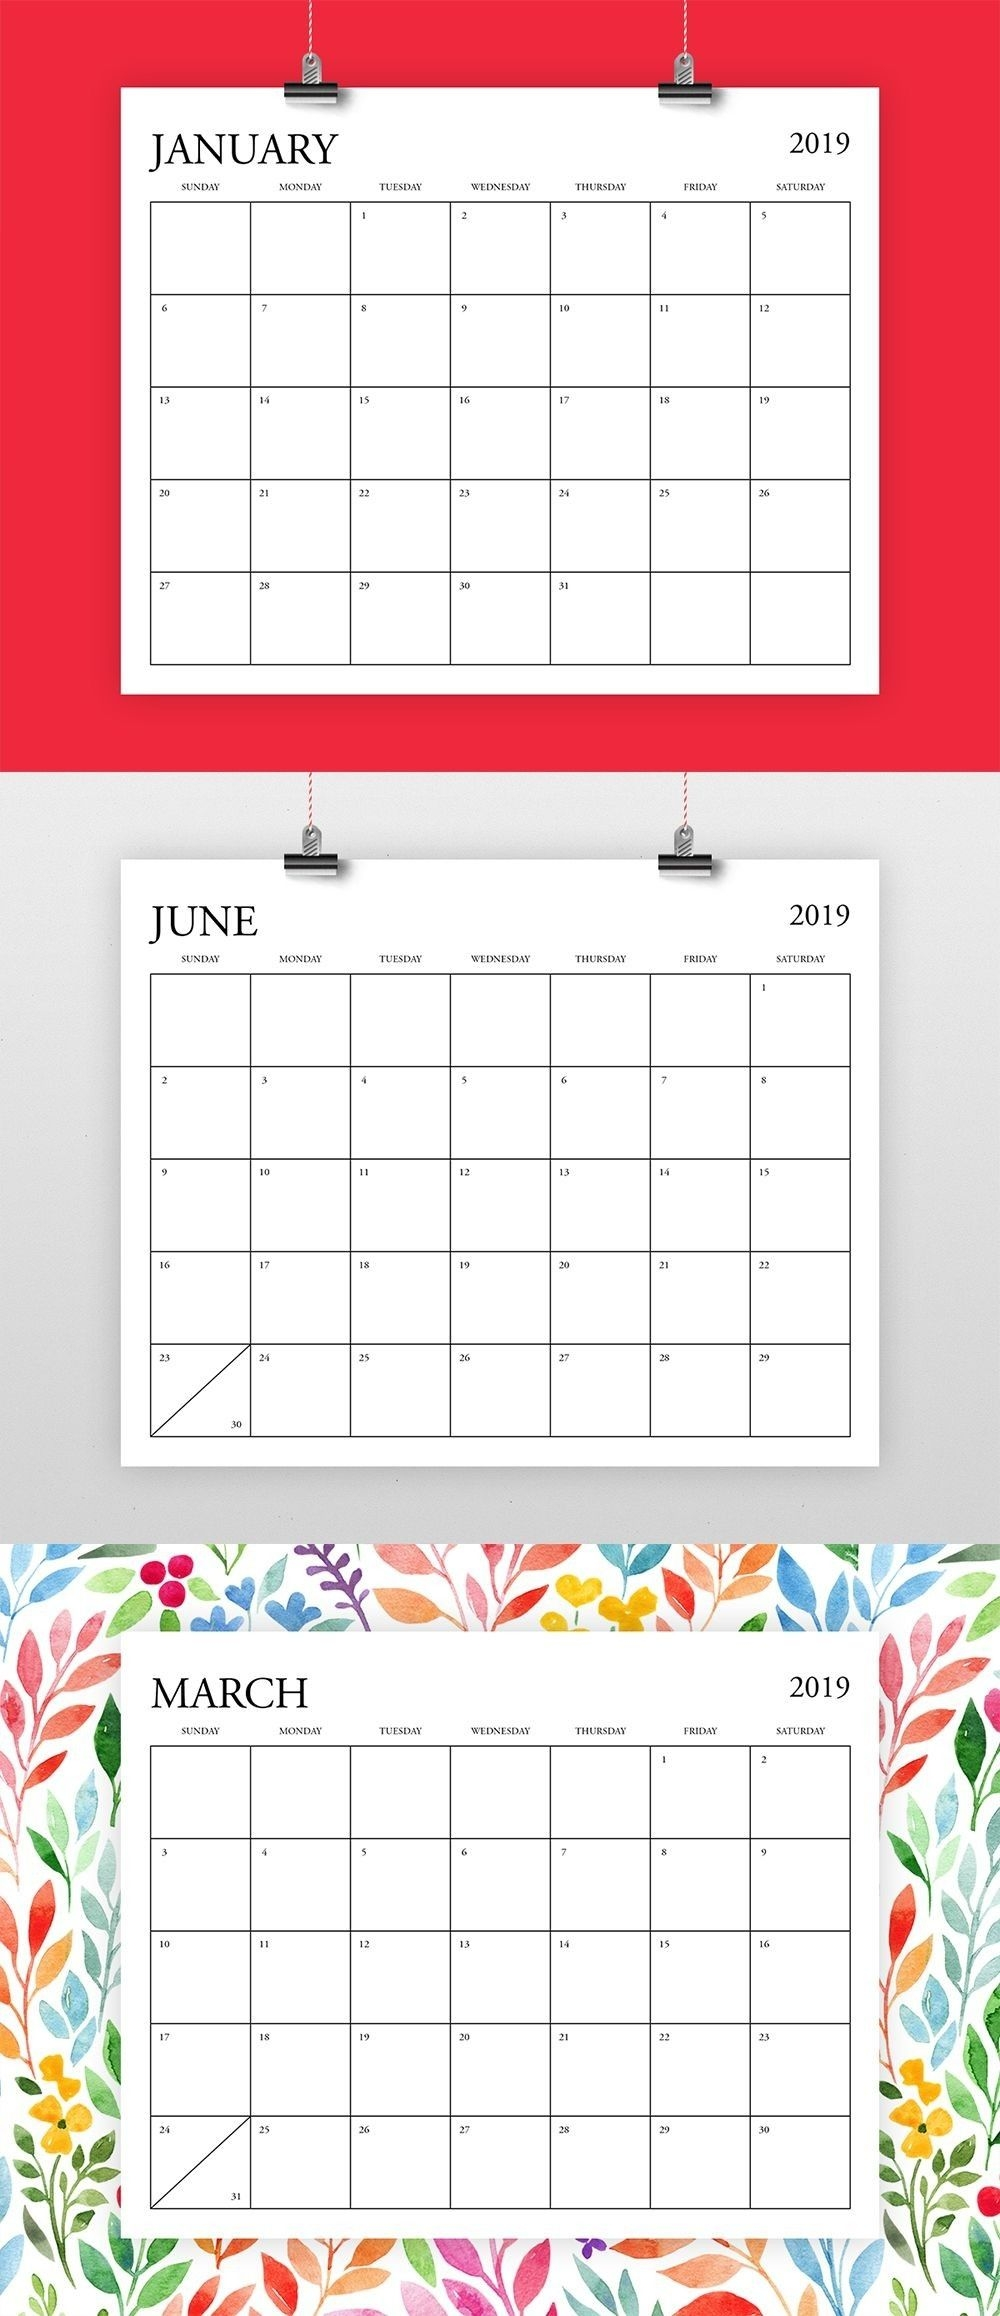 8X 10 Monthly Calaendar Printable | Calendar Template